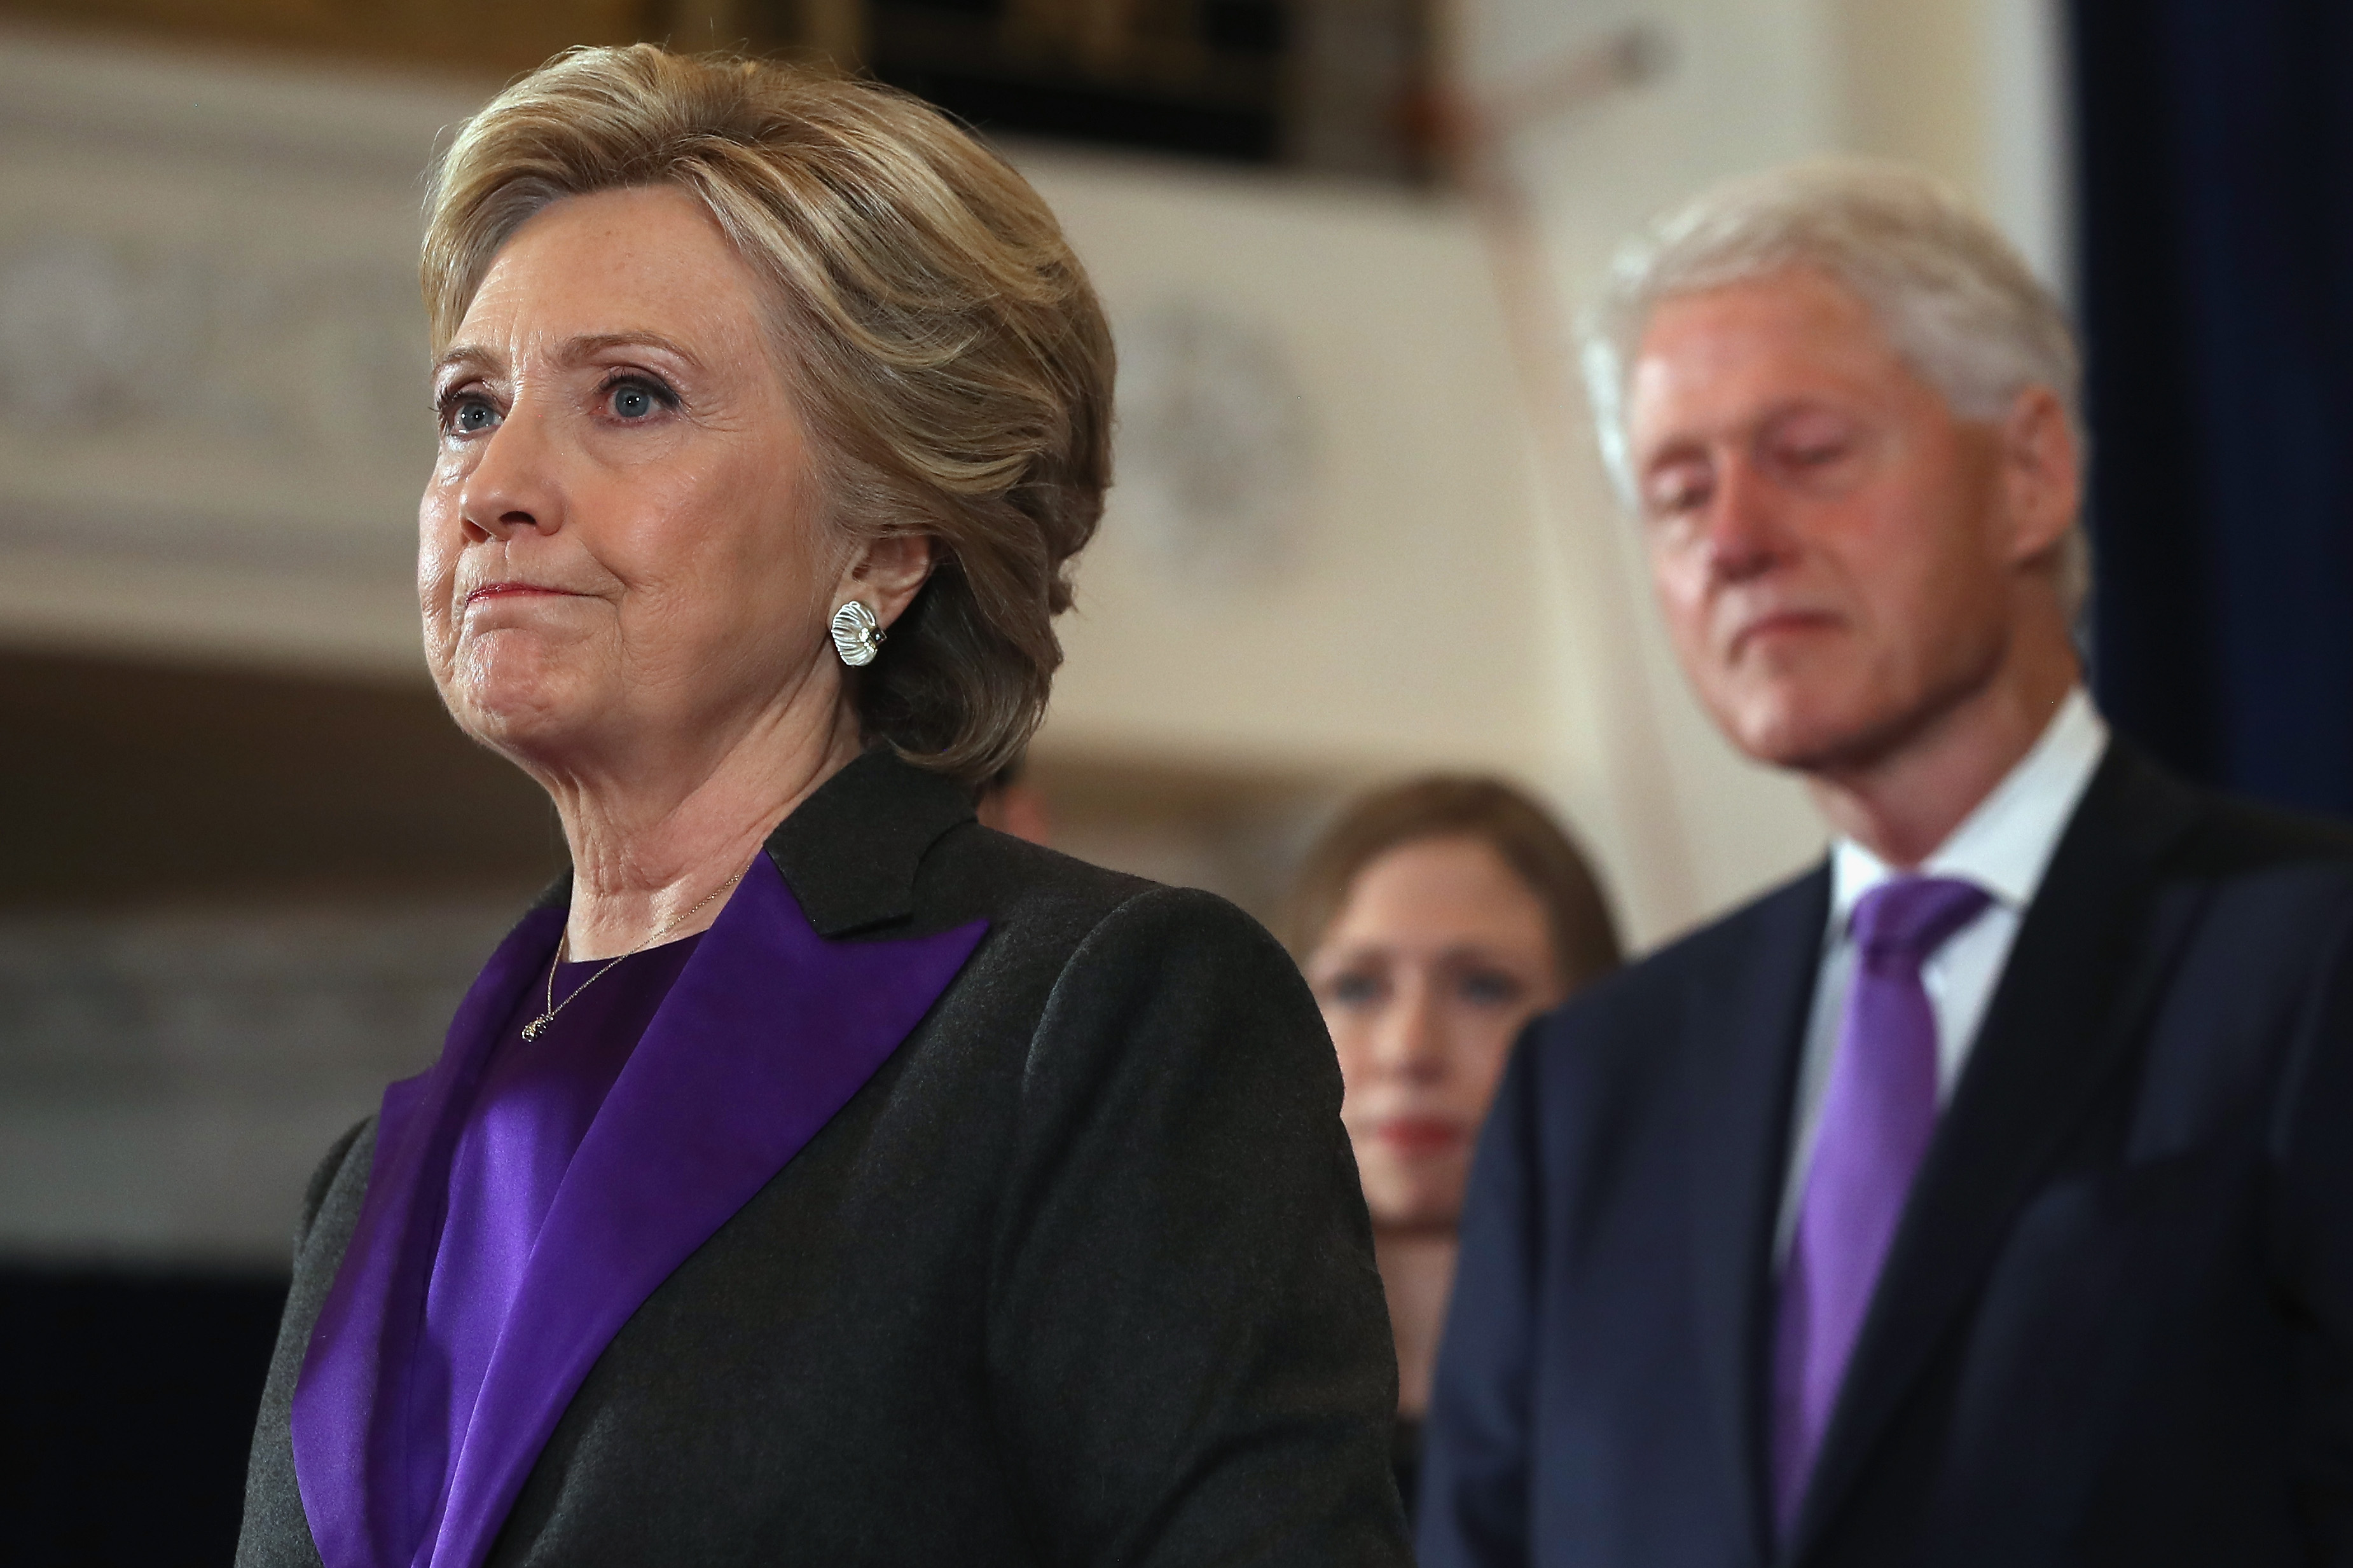 Hillary and Bill Clinton received an explosive device in their mailbox